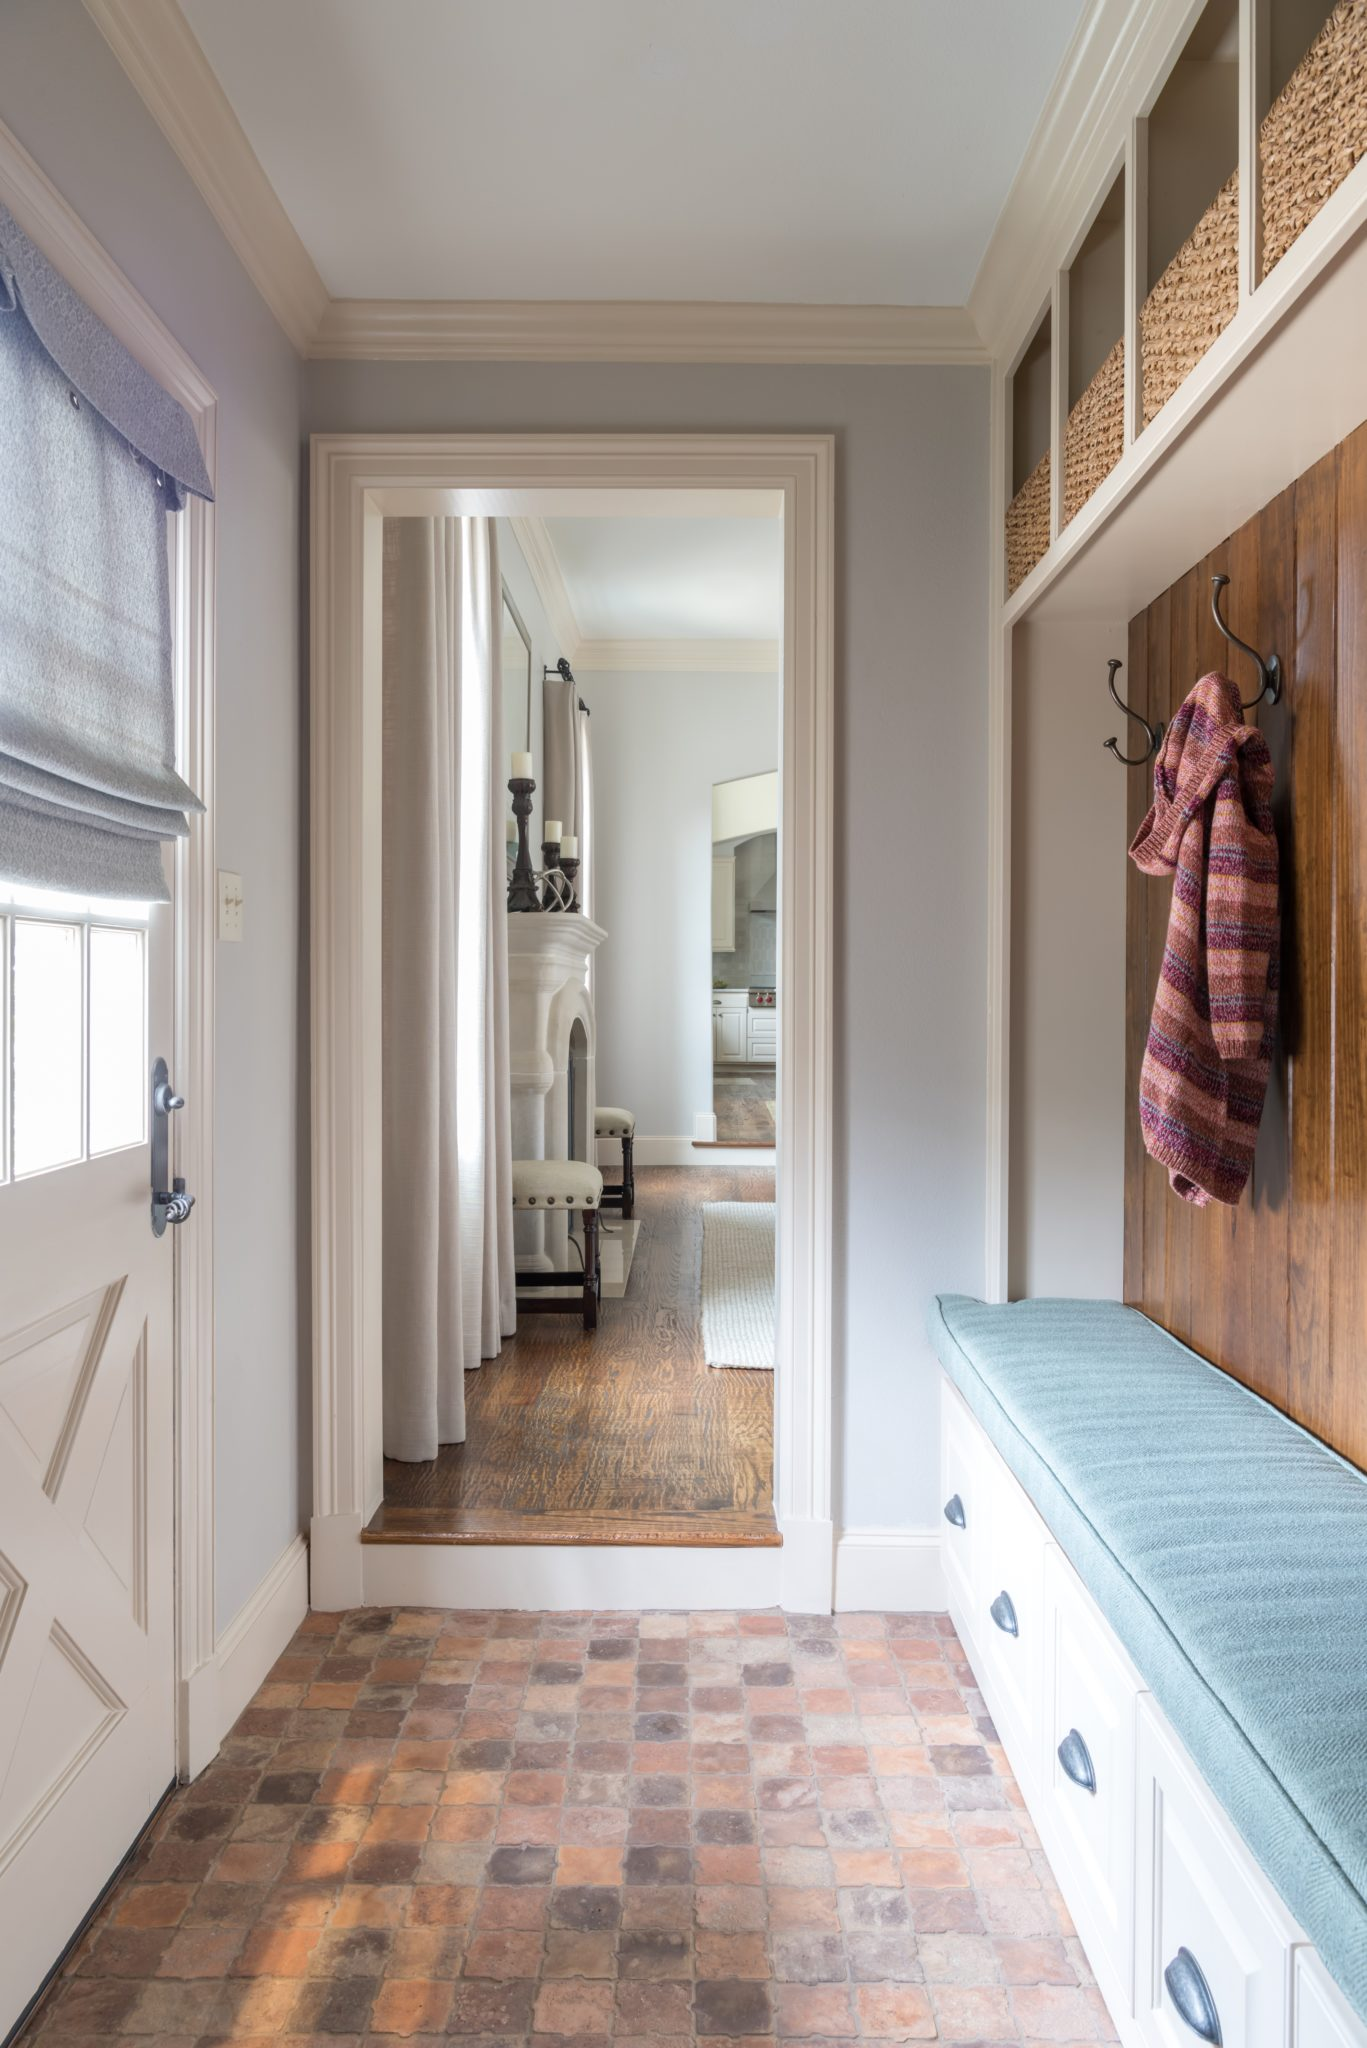 Stanford Avenue, Mudroom with Concrete Tile by Allison Seidler Interiors